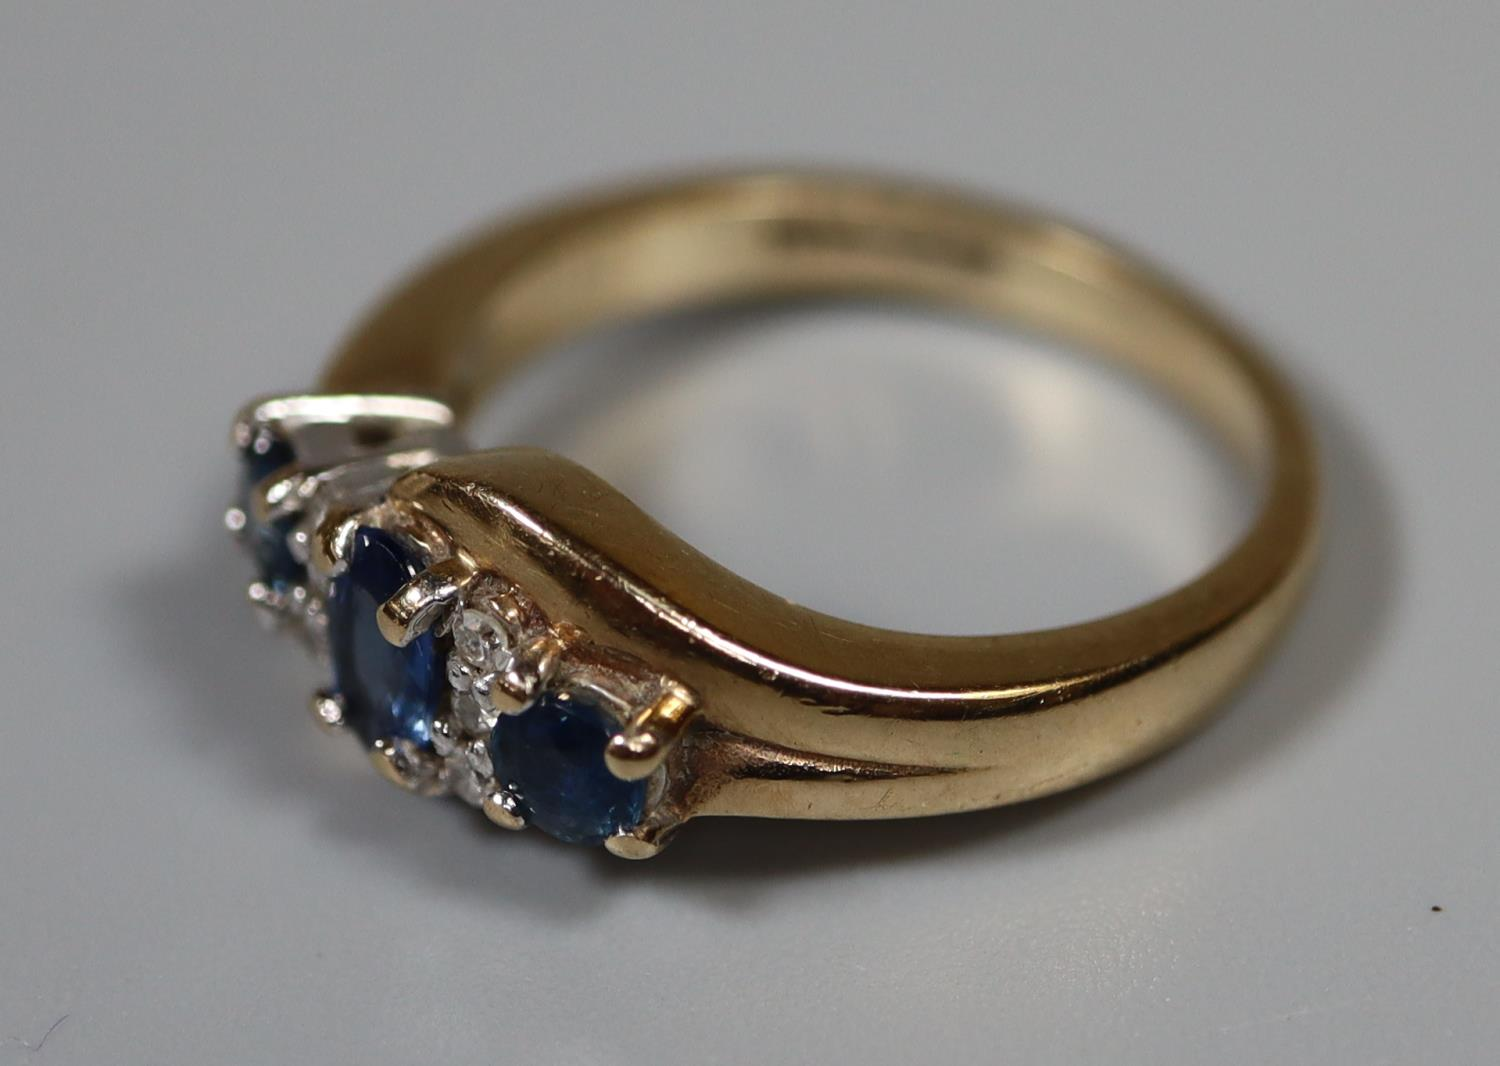 9ct gold sapphire and diamond cluster ring. Ring size H. Approx weight 3 grams. (B.P. 21% + VAT) - Image 3 of 3